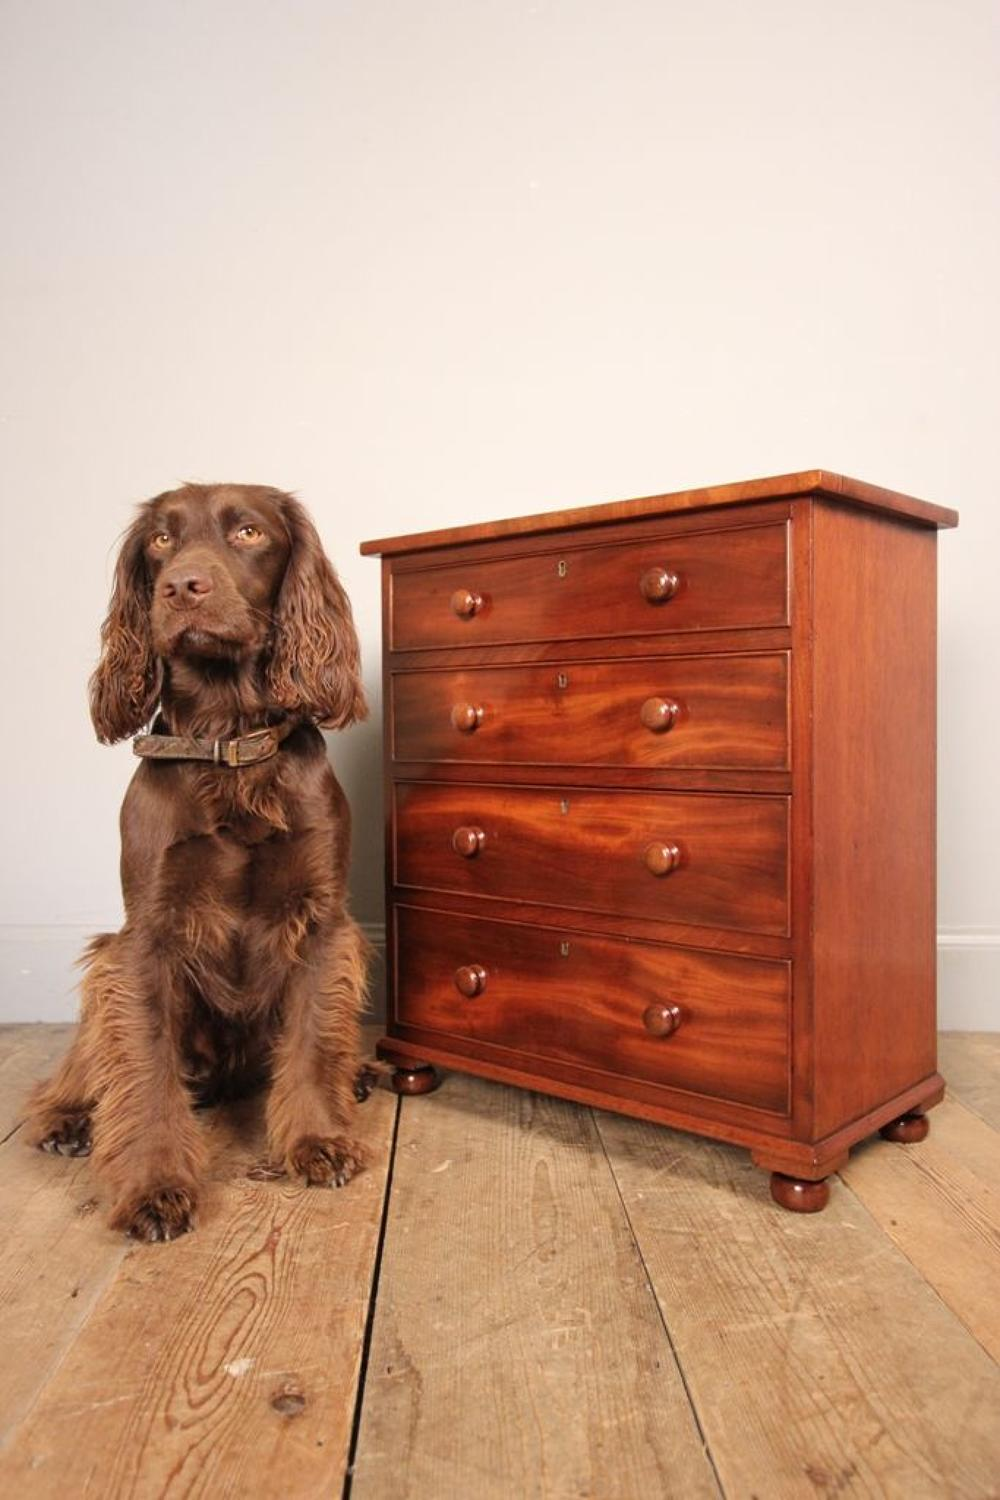 Super Quality 19th C Mahogany Apprentice Chest of Drawers